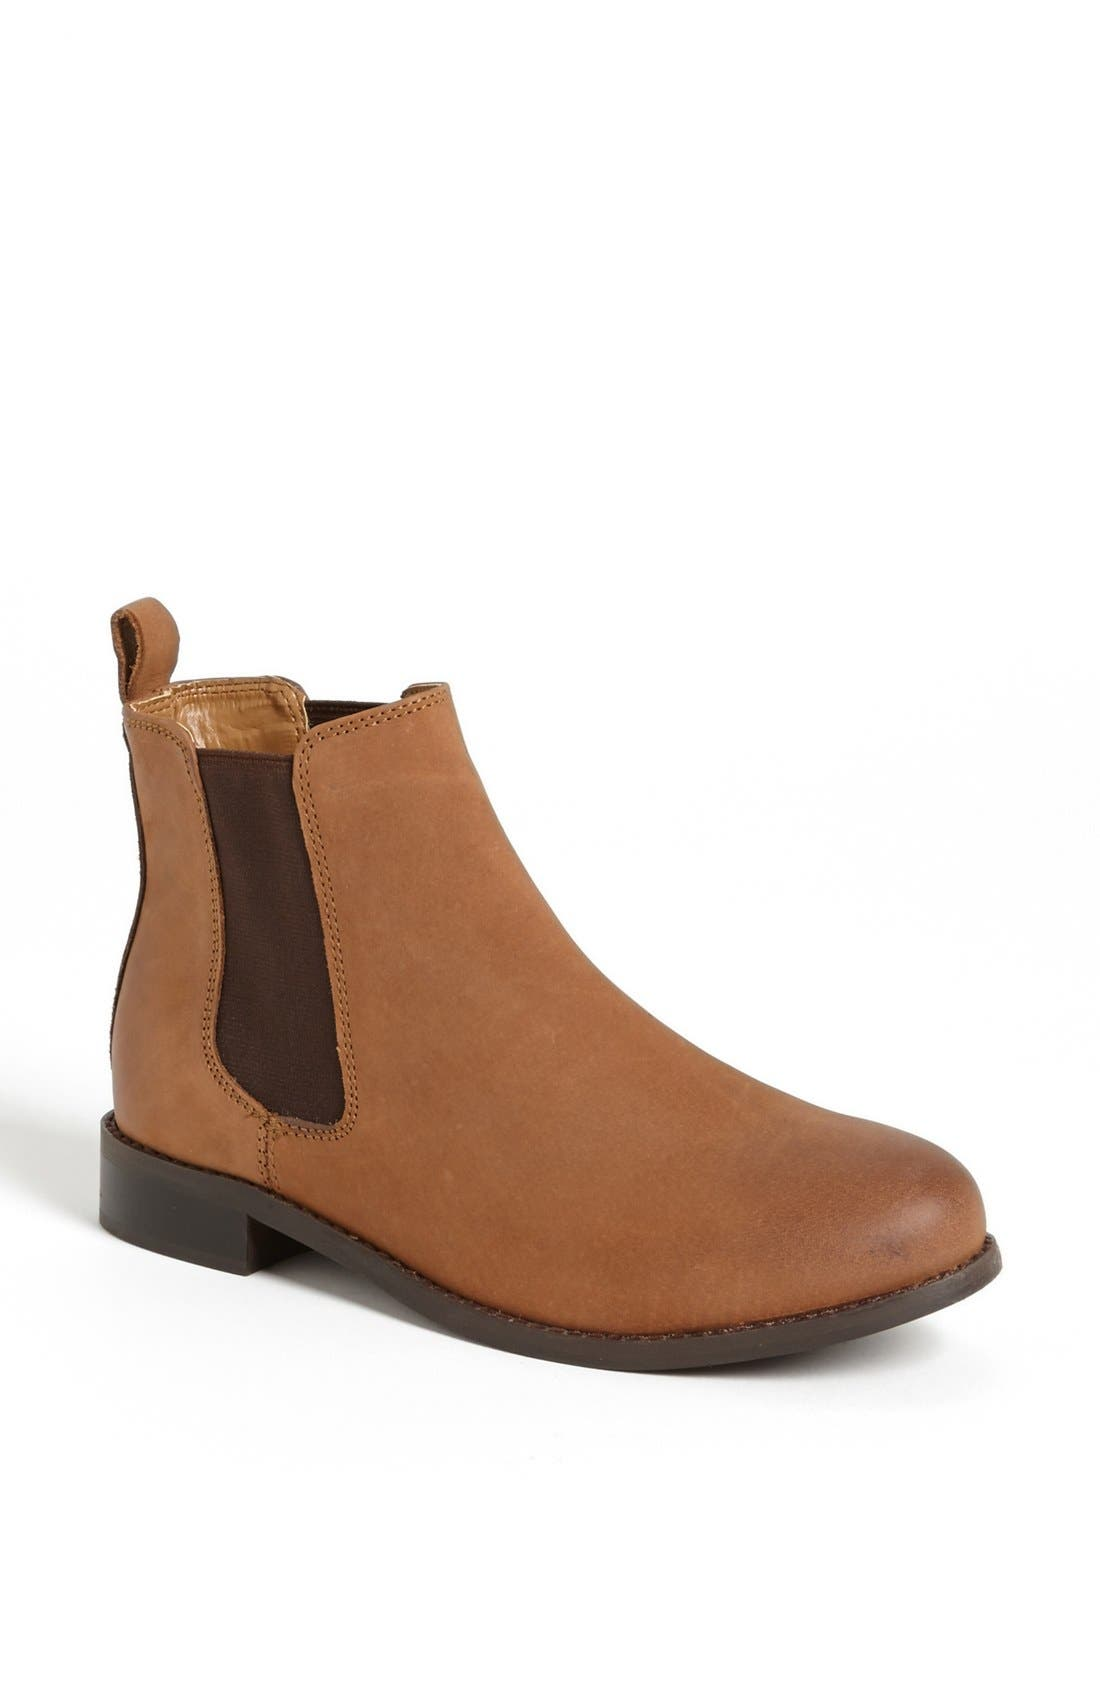 Main Image - Topshop 'Month' Chelsea Boot